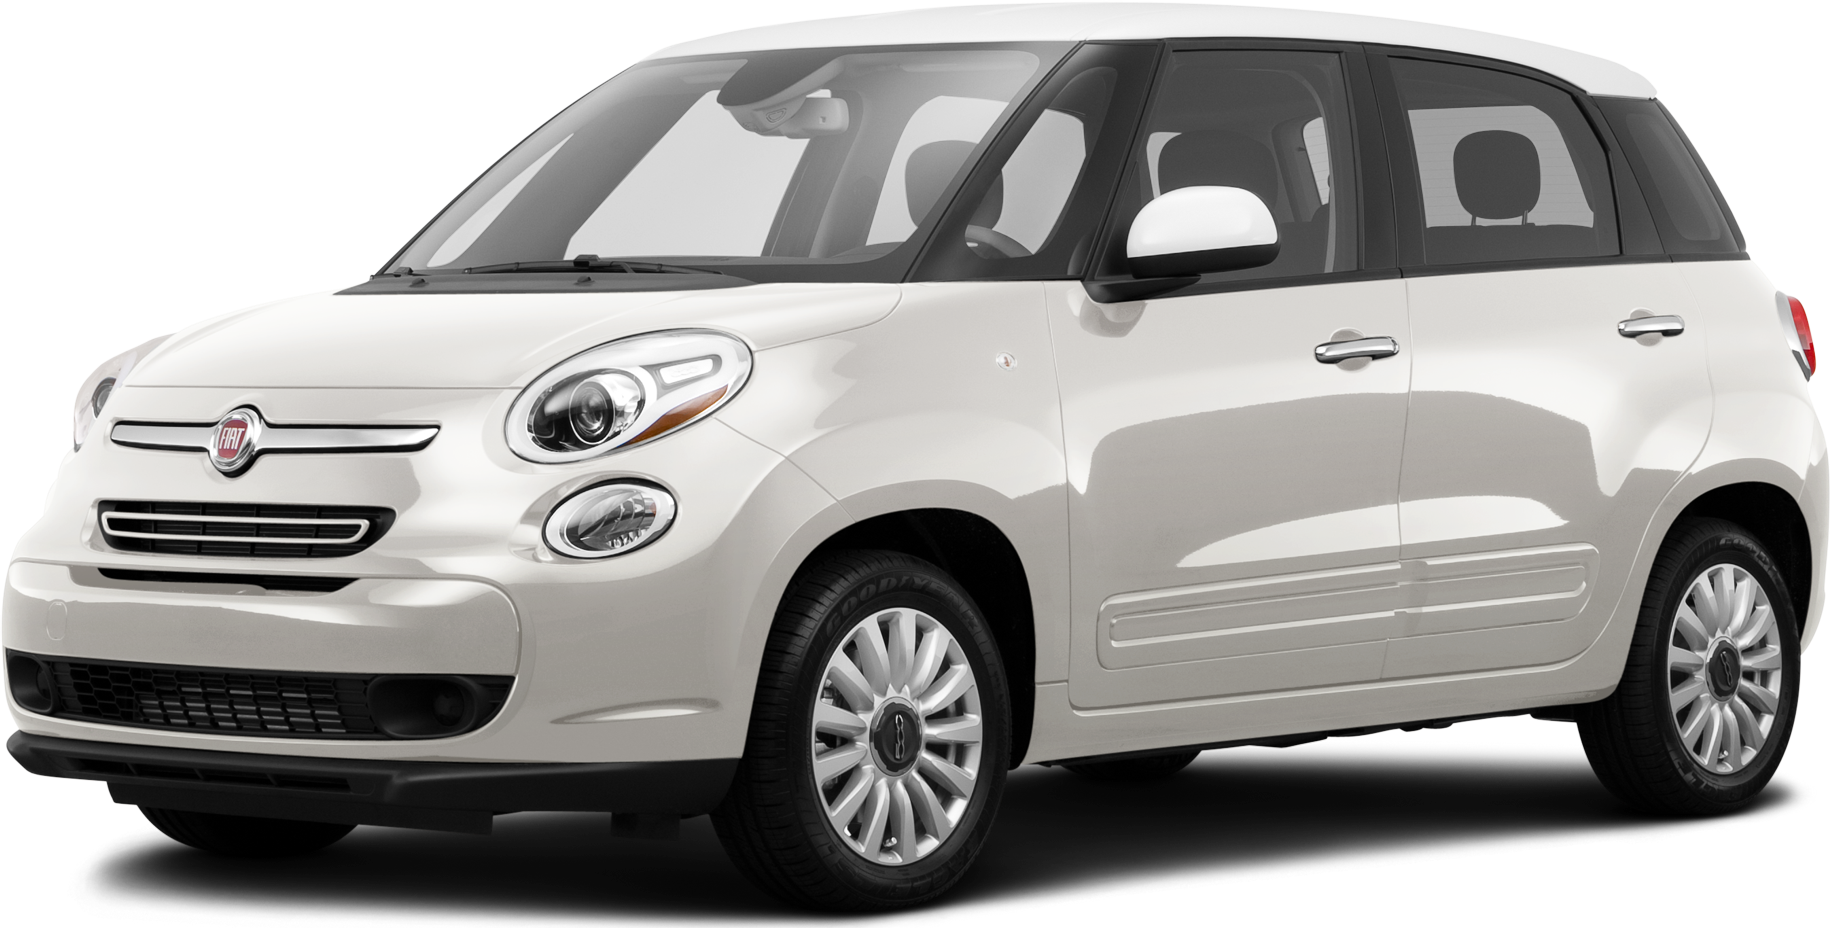 2014 Fiat 500l Values Cars For Sale Kelley Blue Book